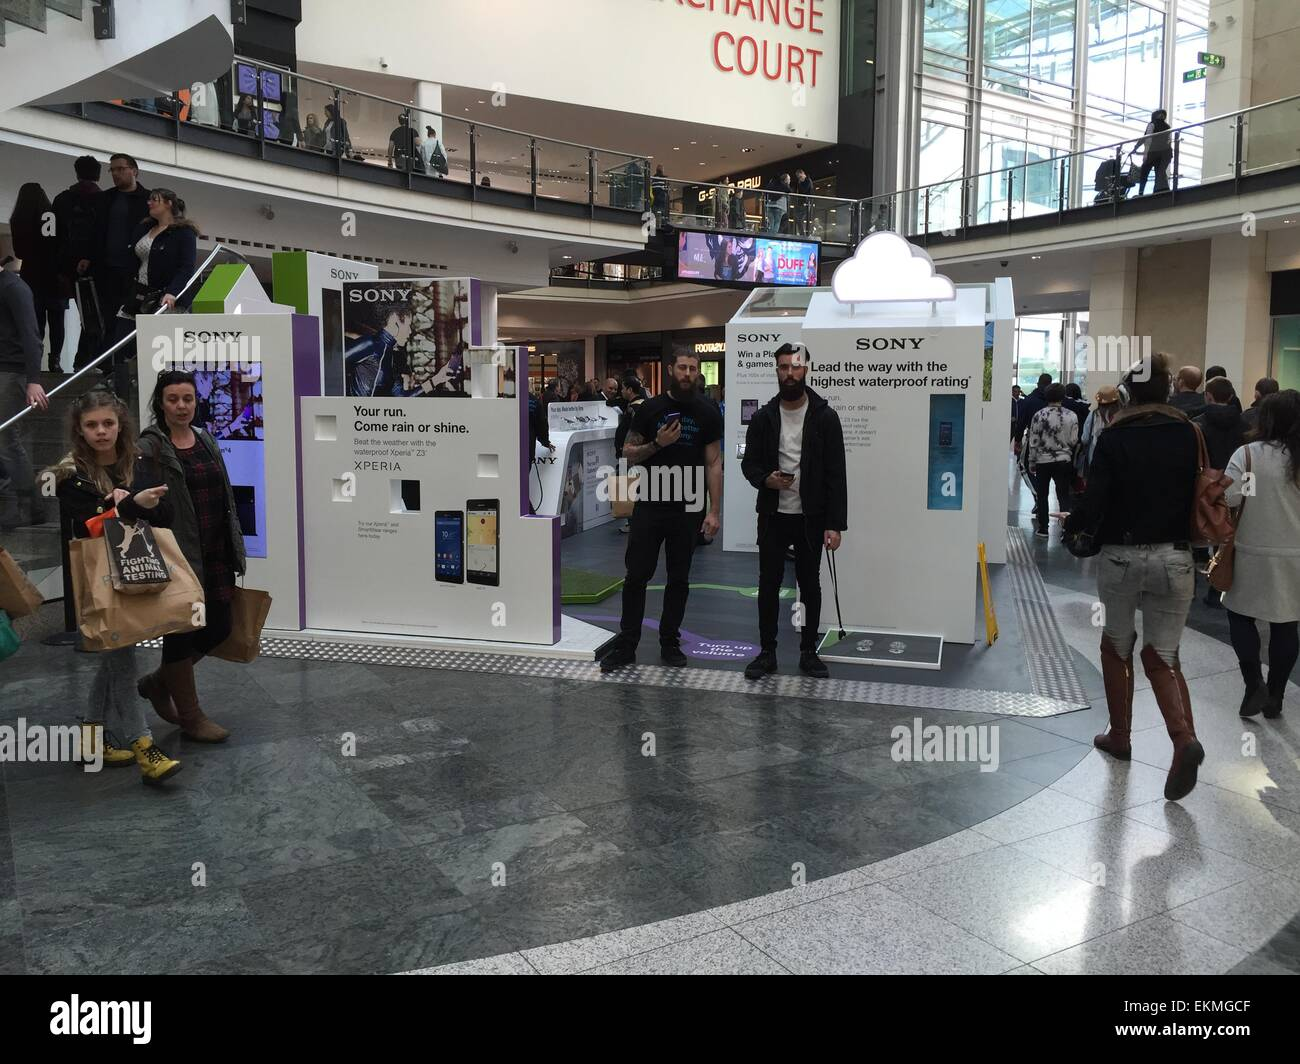 Sony exhibition in Manchester Arndale - Stock Image